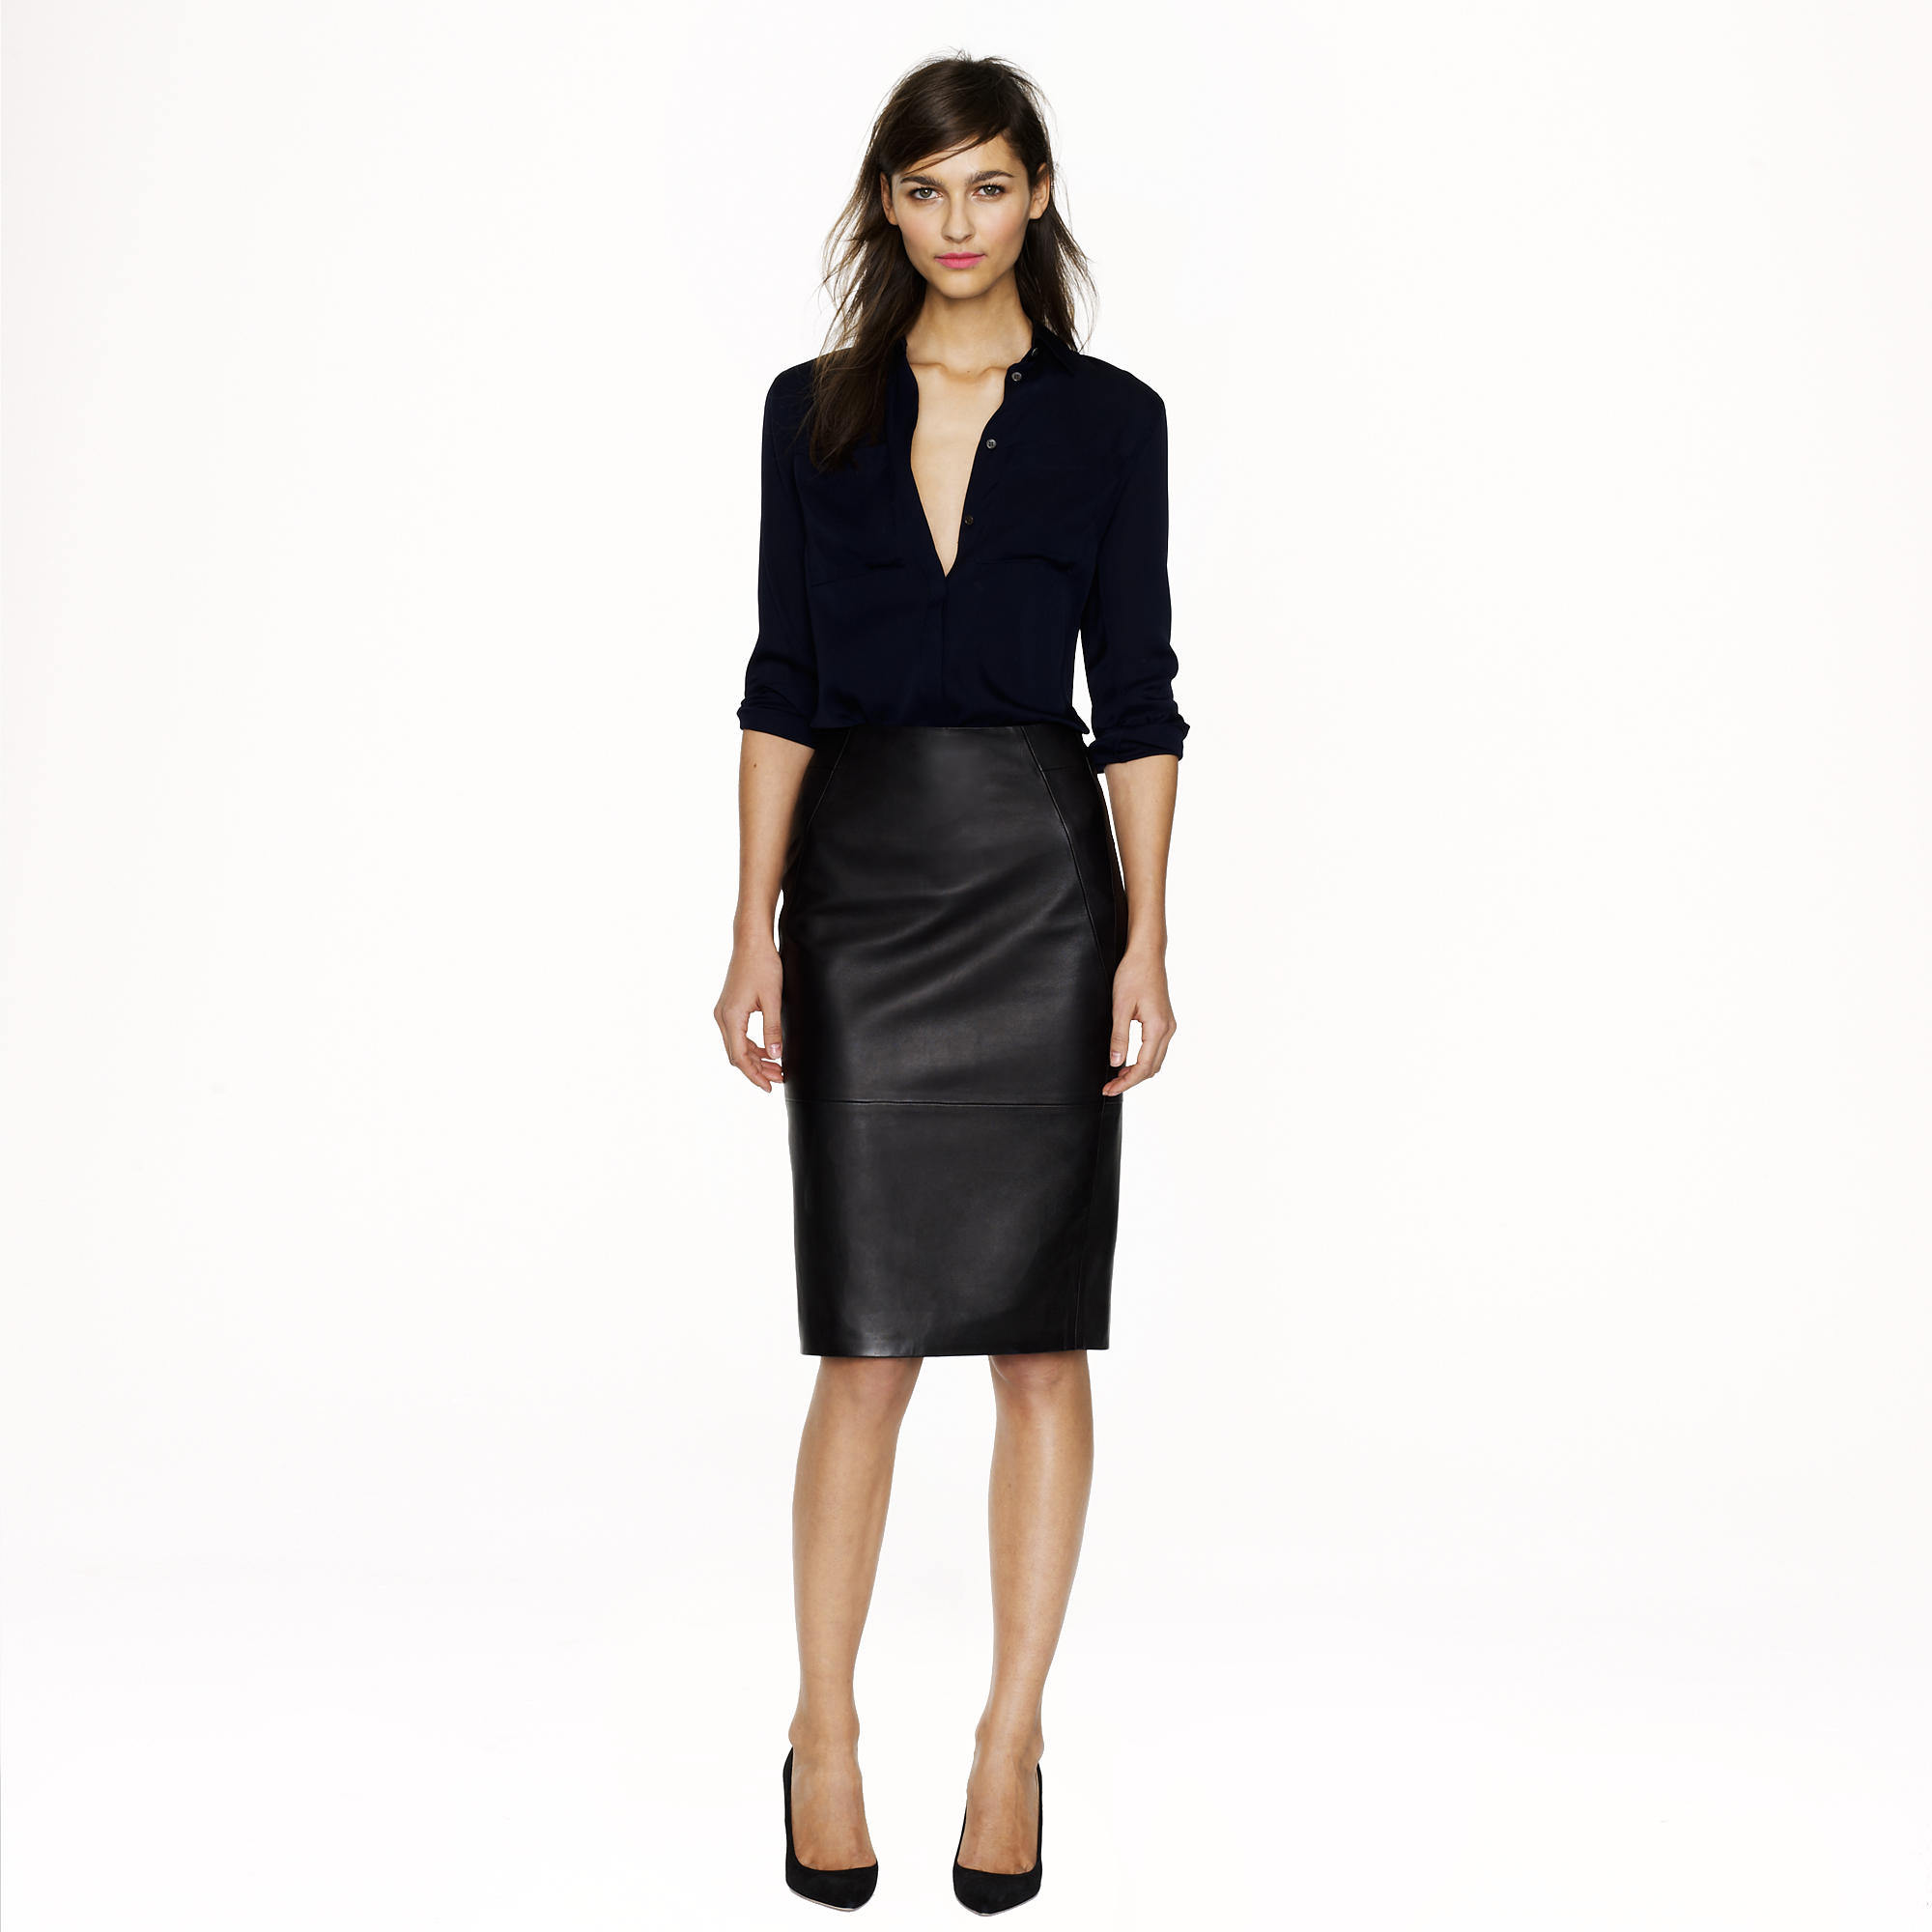 63f3fa04f8 J.Crew Collection Leather Pencil Skirt in Black - Lyst